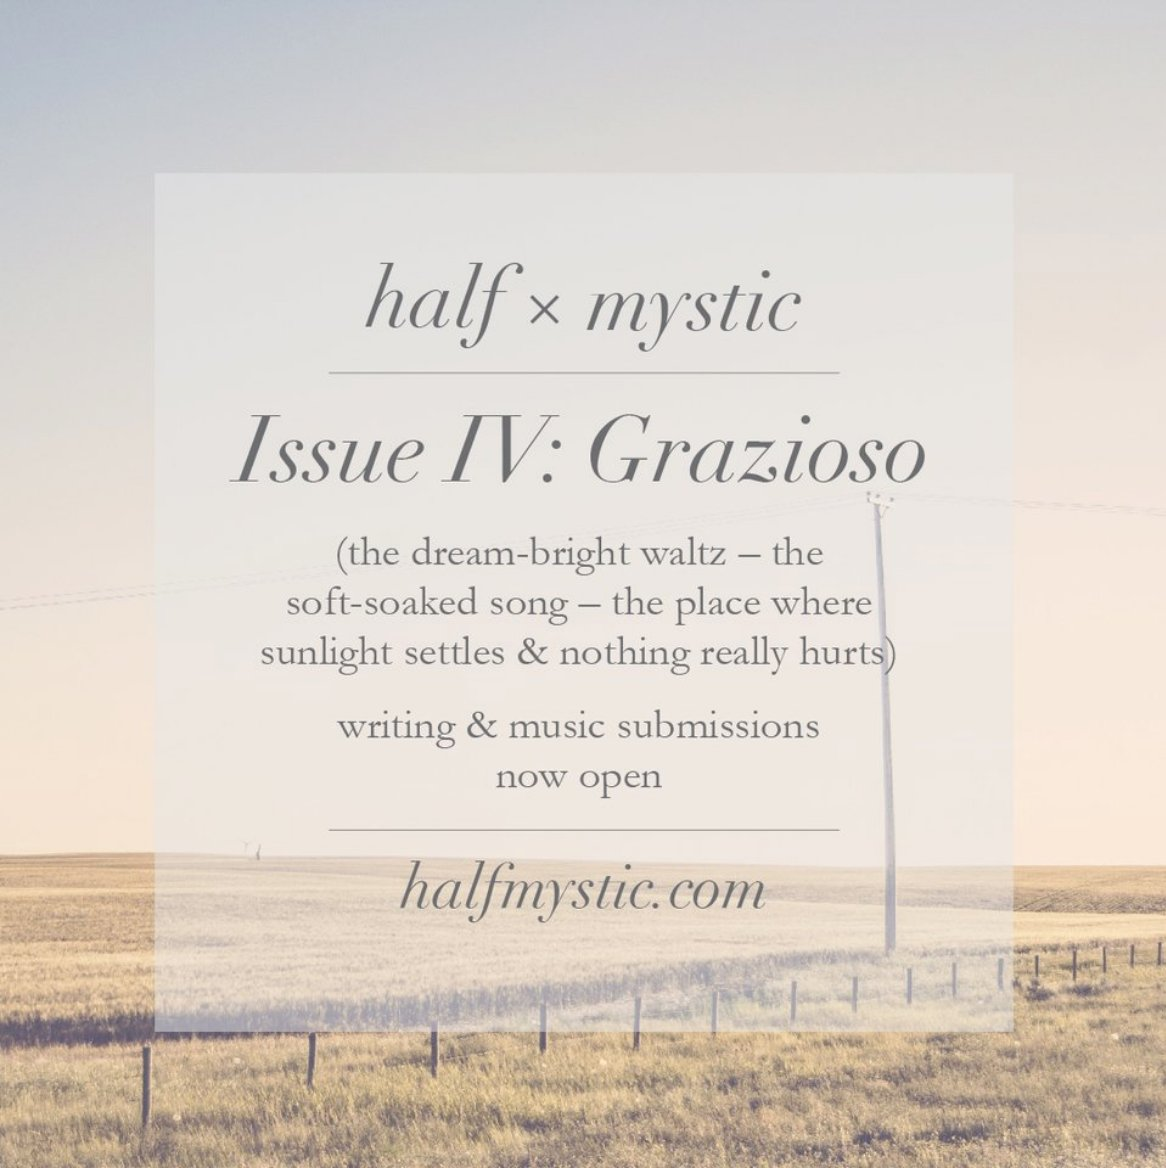 Half mystic press on twitter songbirds dont forget that we are half mystic press on twitter songbirds dont forget that we are still open for music writing submissions to issue iv grazioso stopboris Gallery